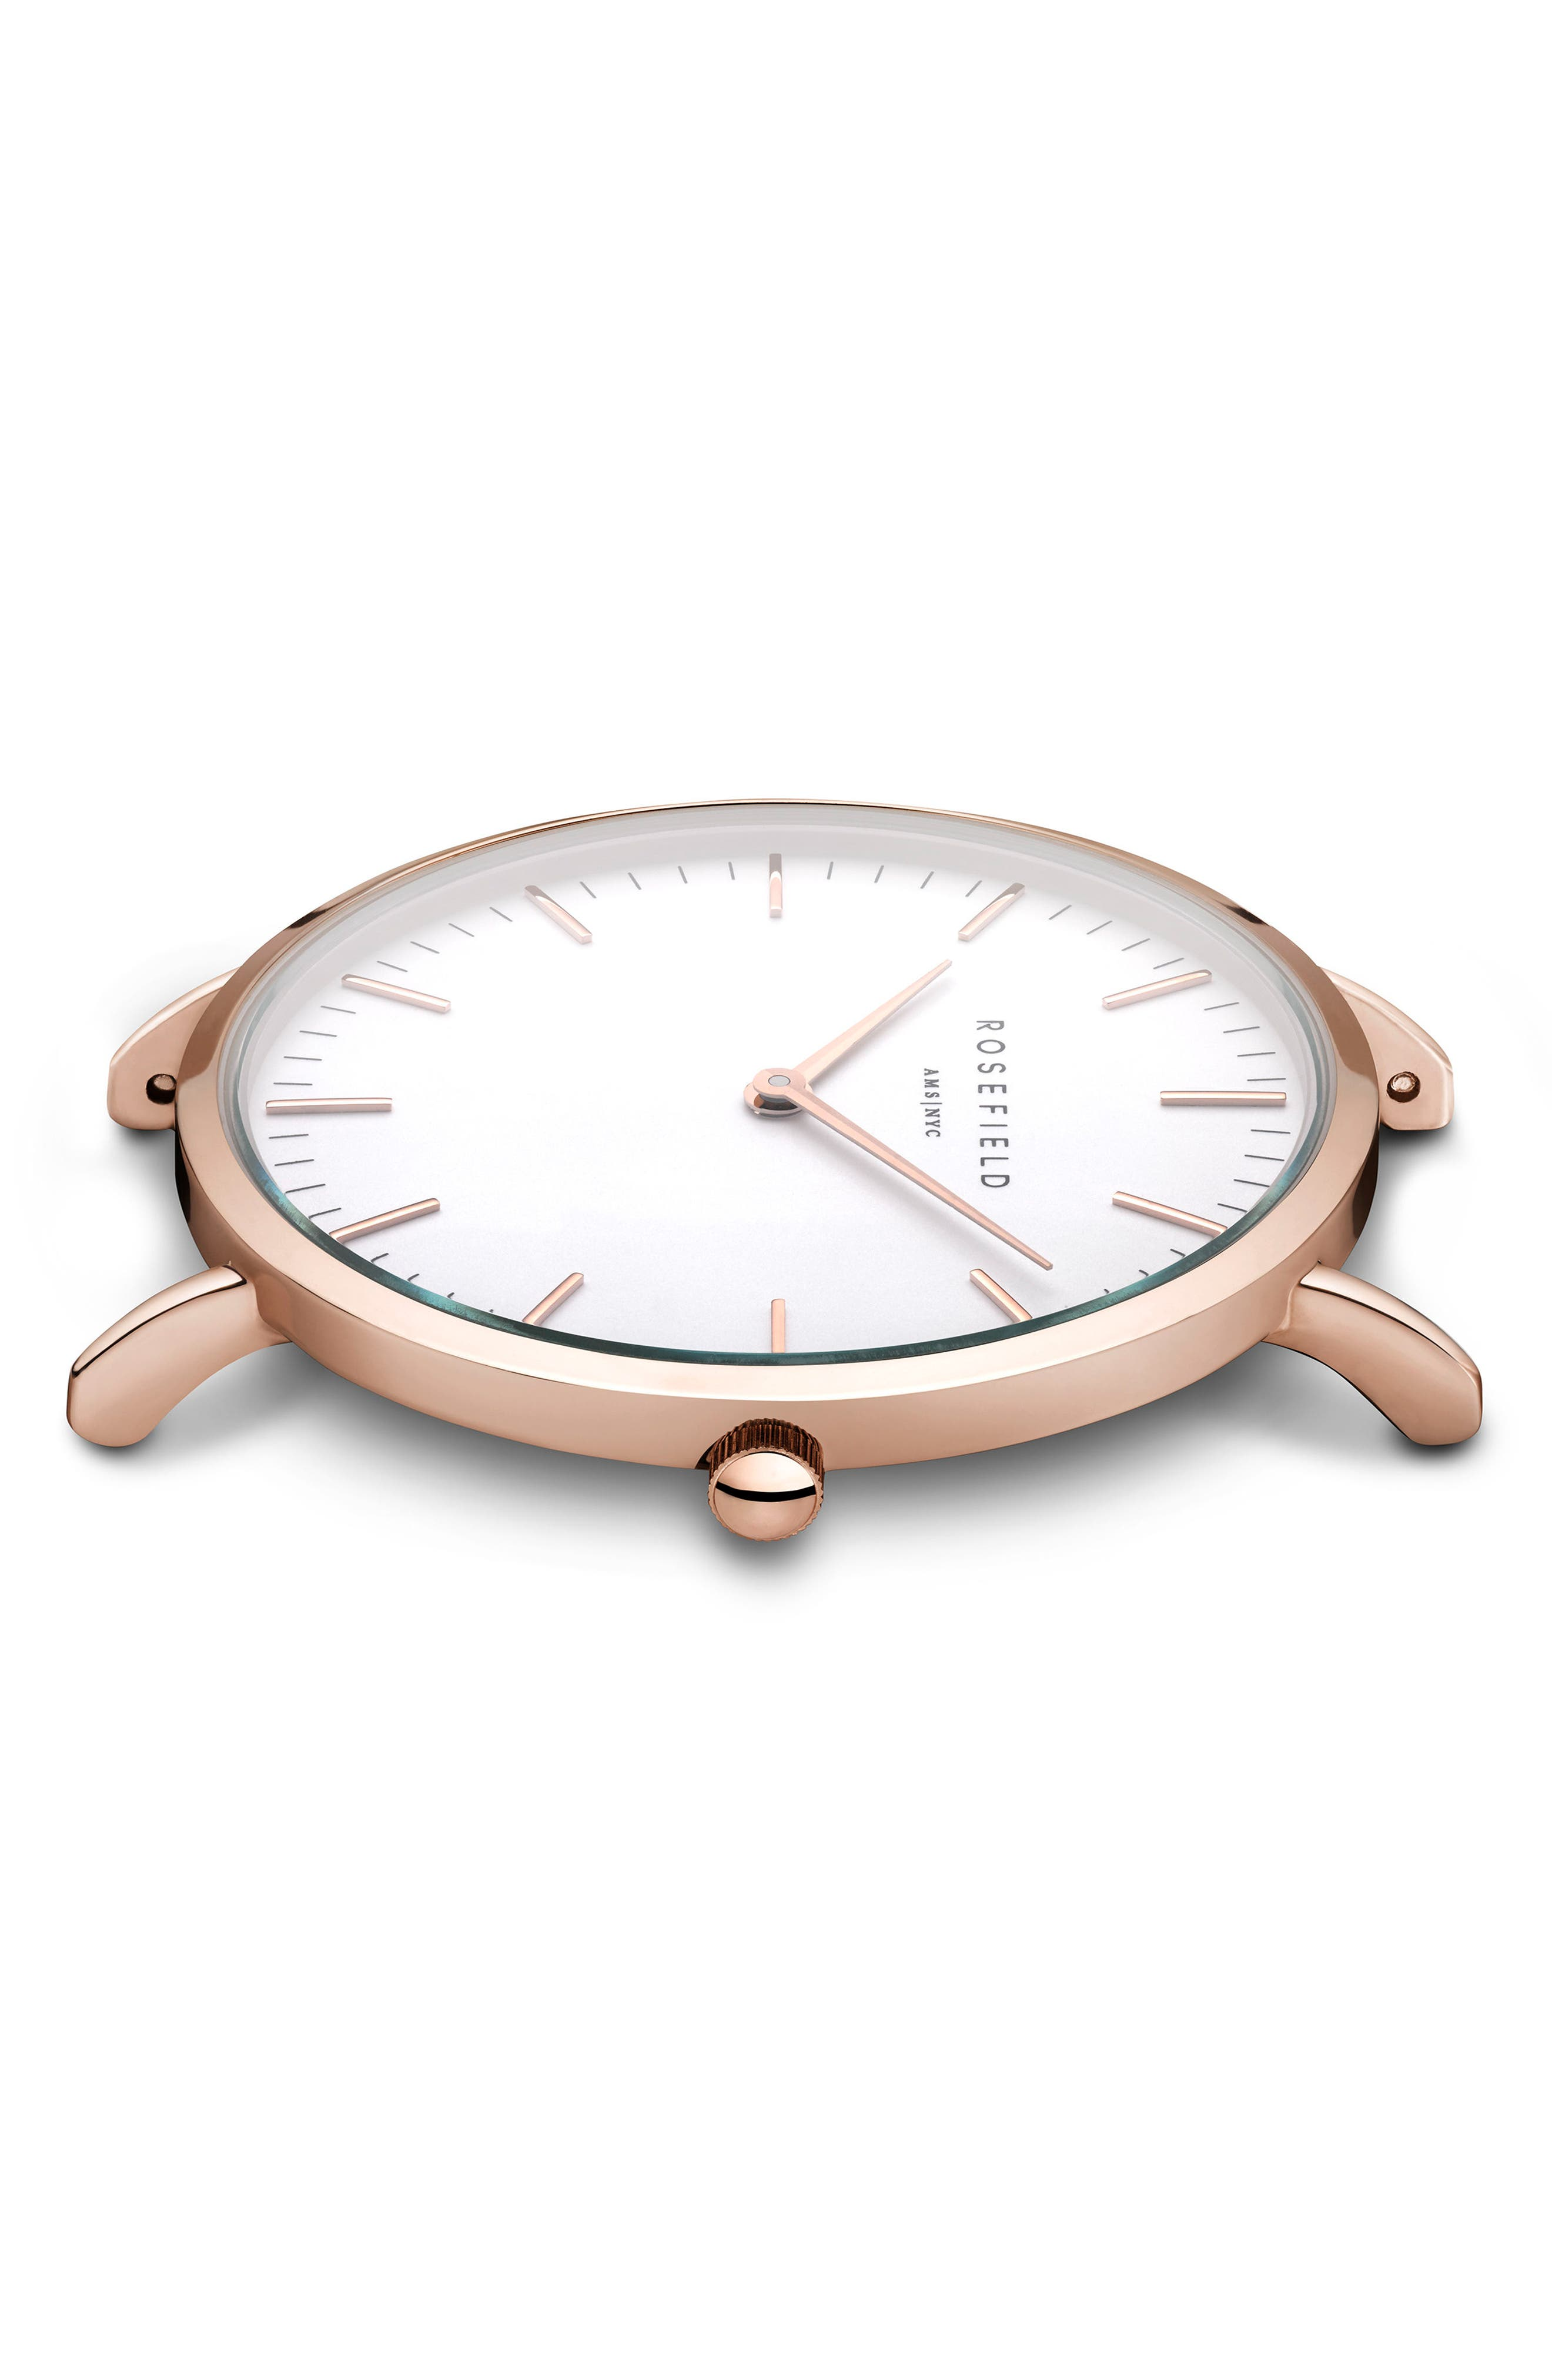 Tribeca Leather Strap Watch, 33mm,                             Alternate thumbnail 3, color,                             GREY/ WHITE/ ROSE GOLD